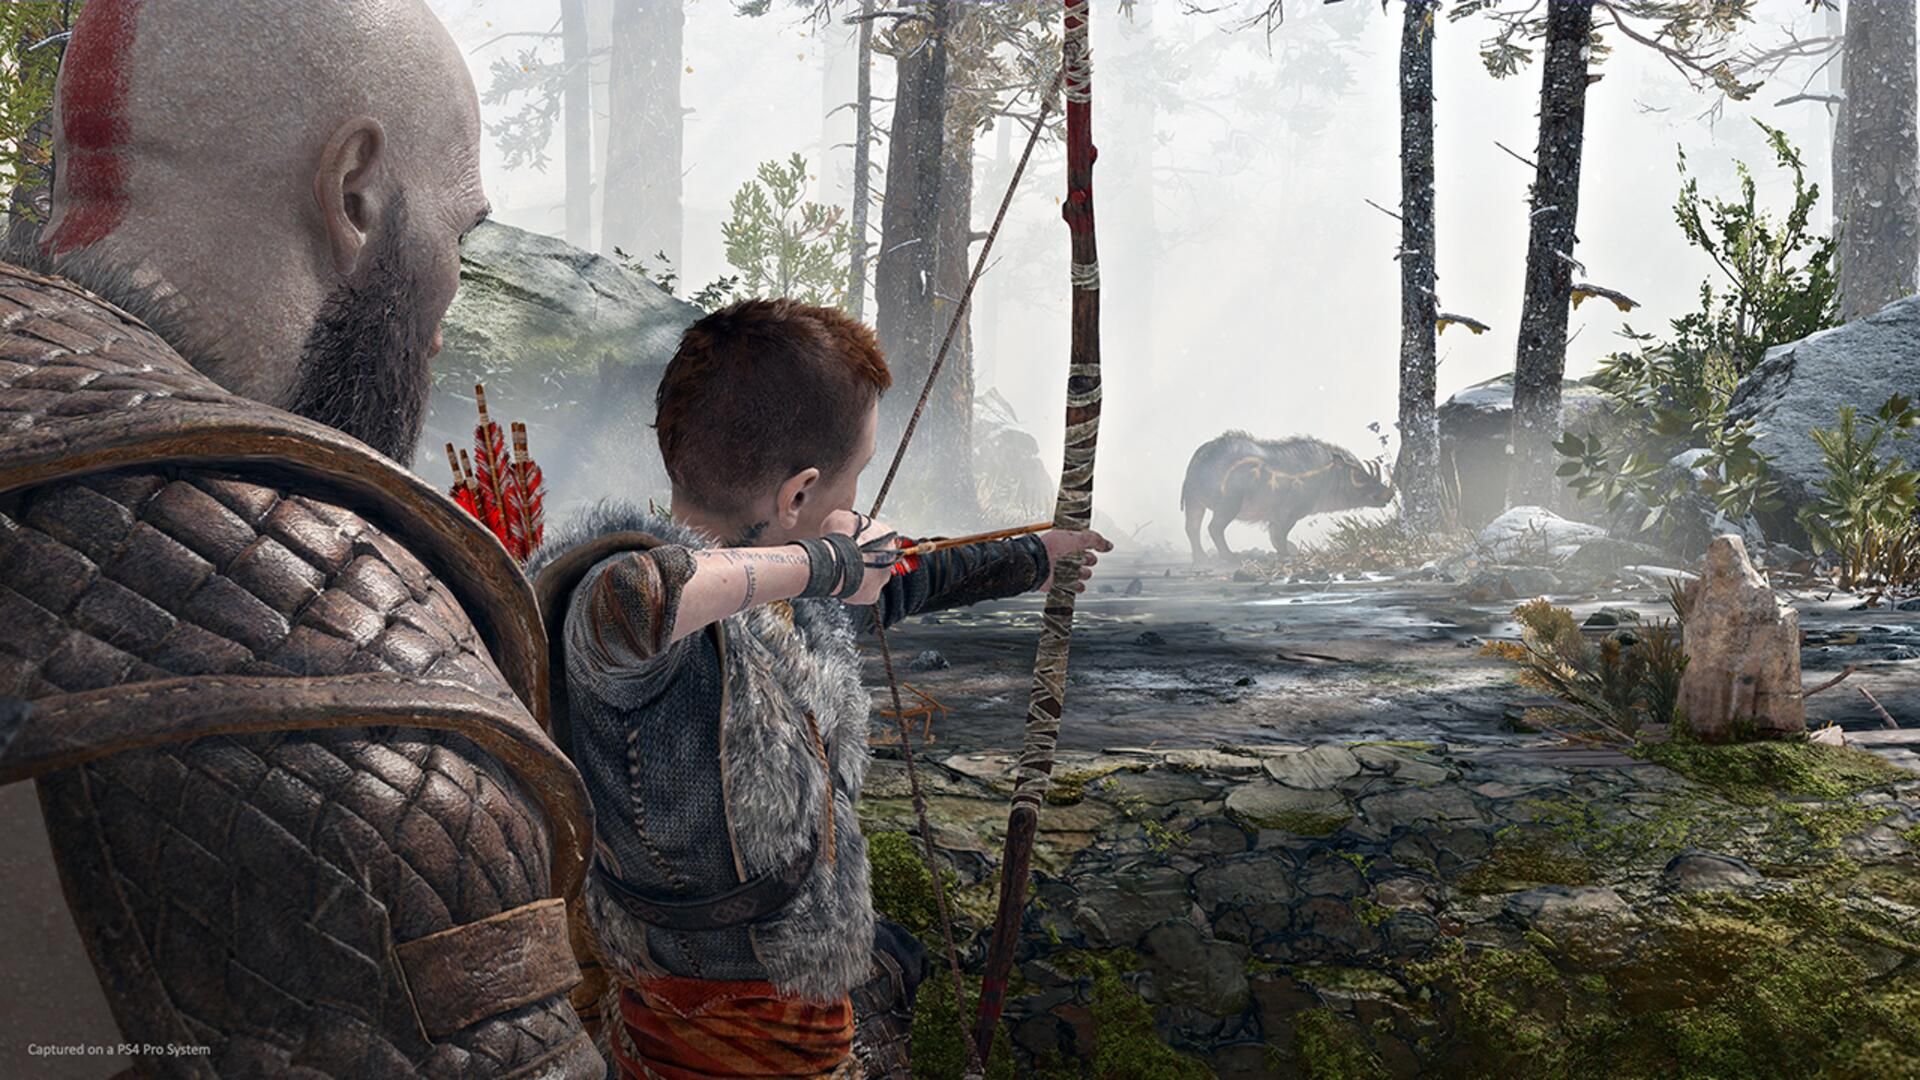 Remembering One of God of War's Critical Scenes Triggers an Emotional Moment Between Sunny Suljic and Cory Barlog